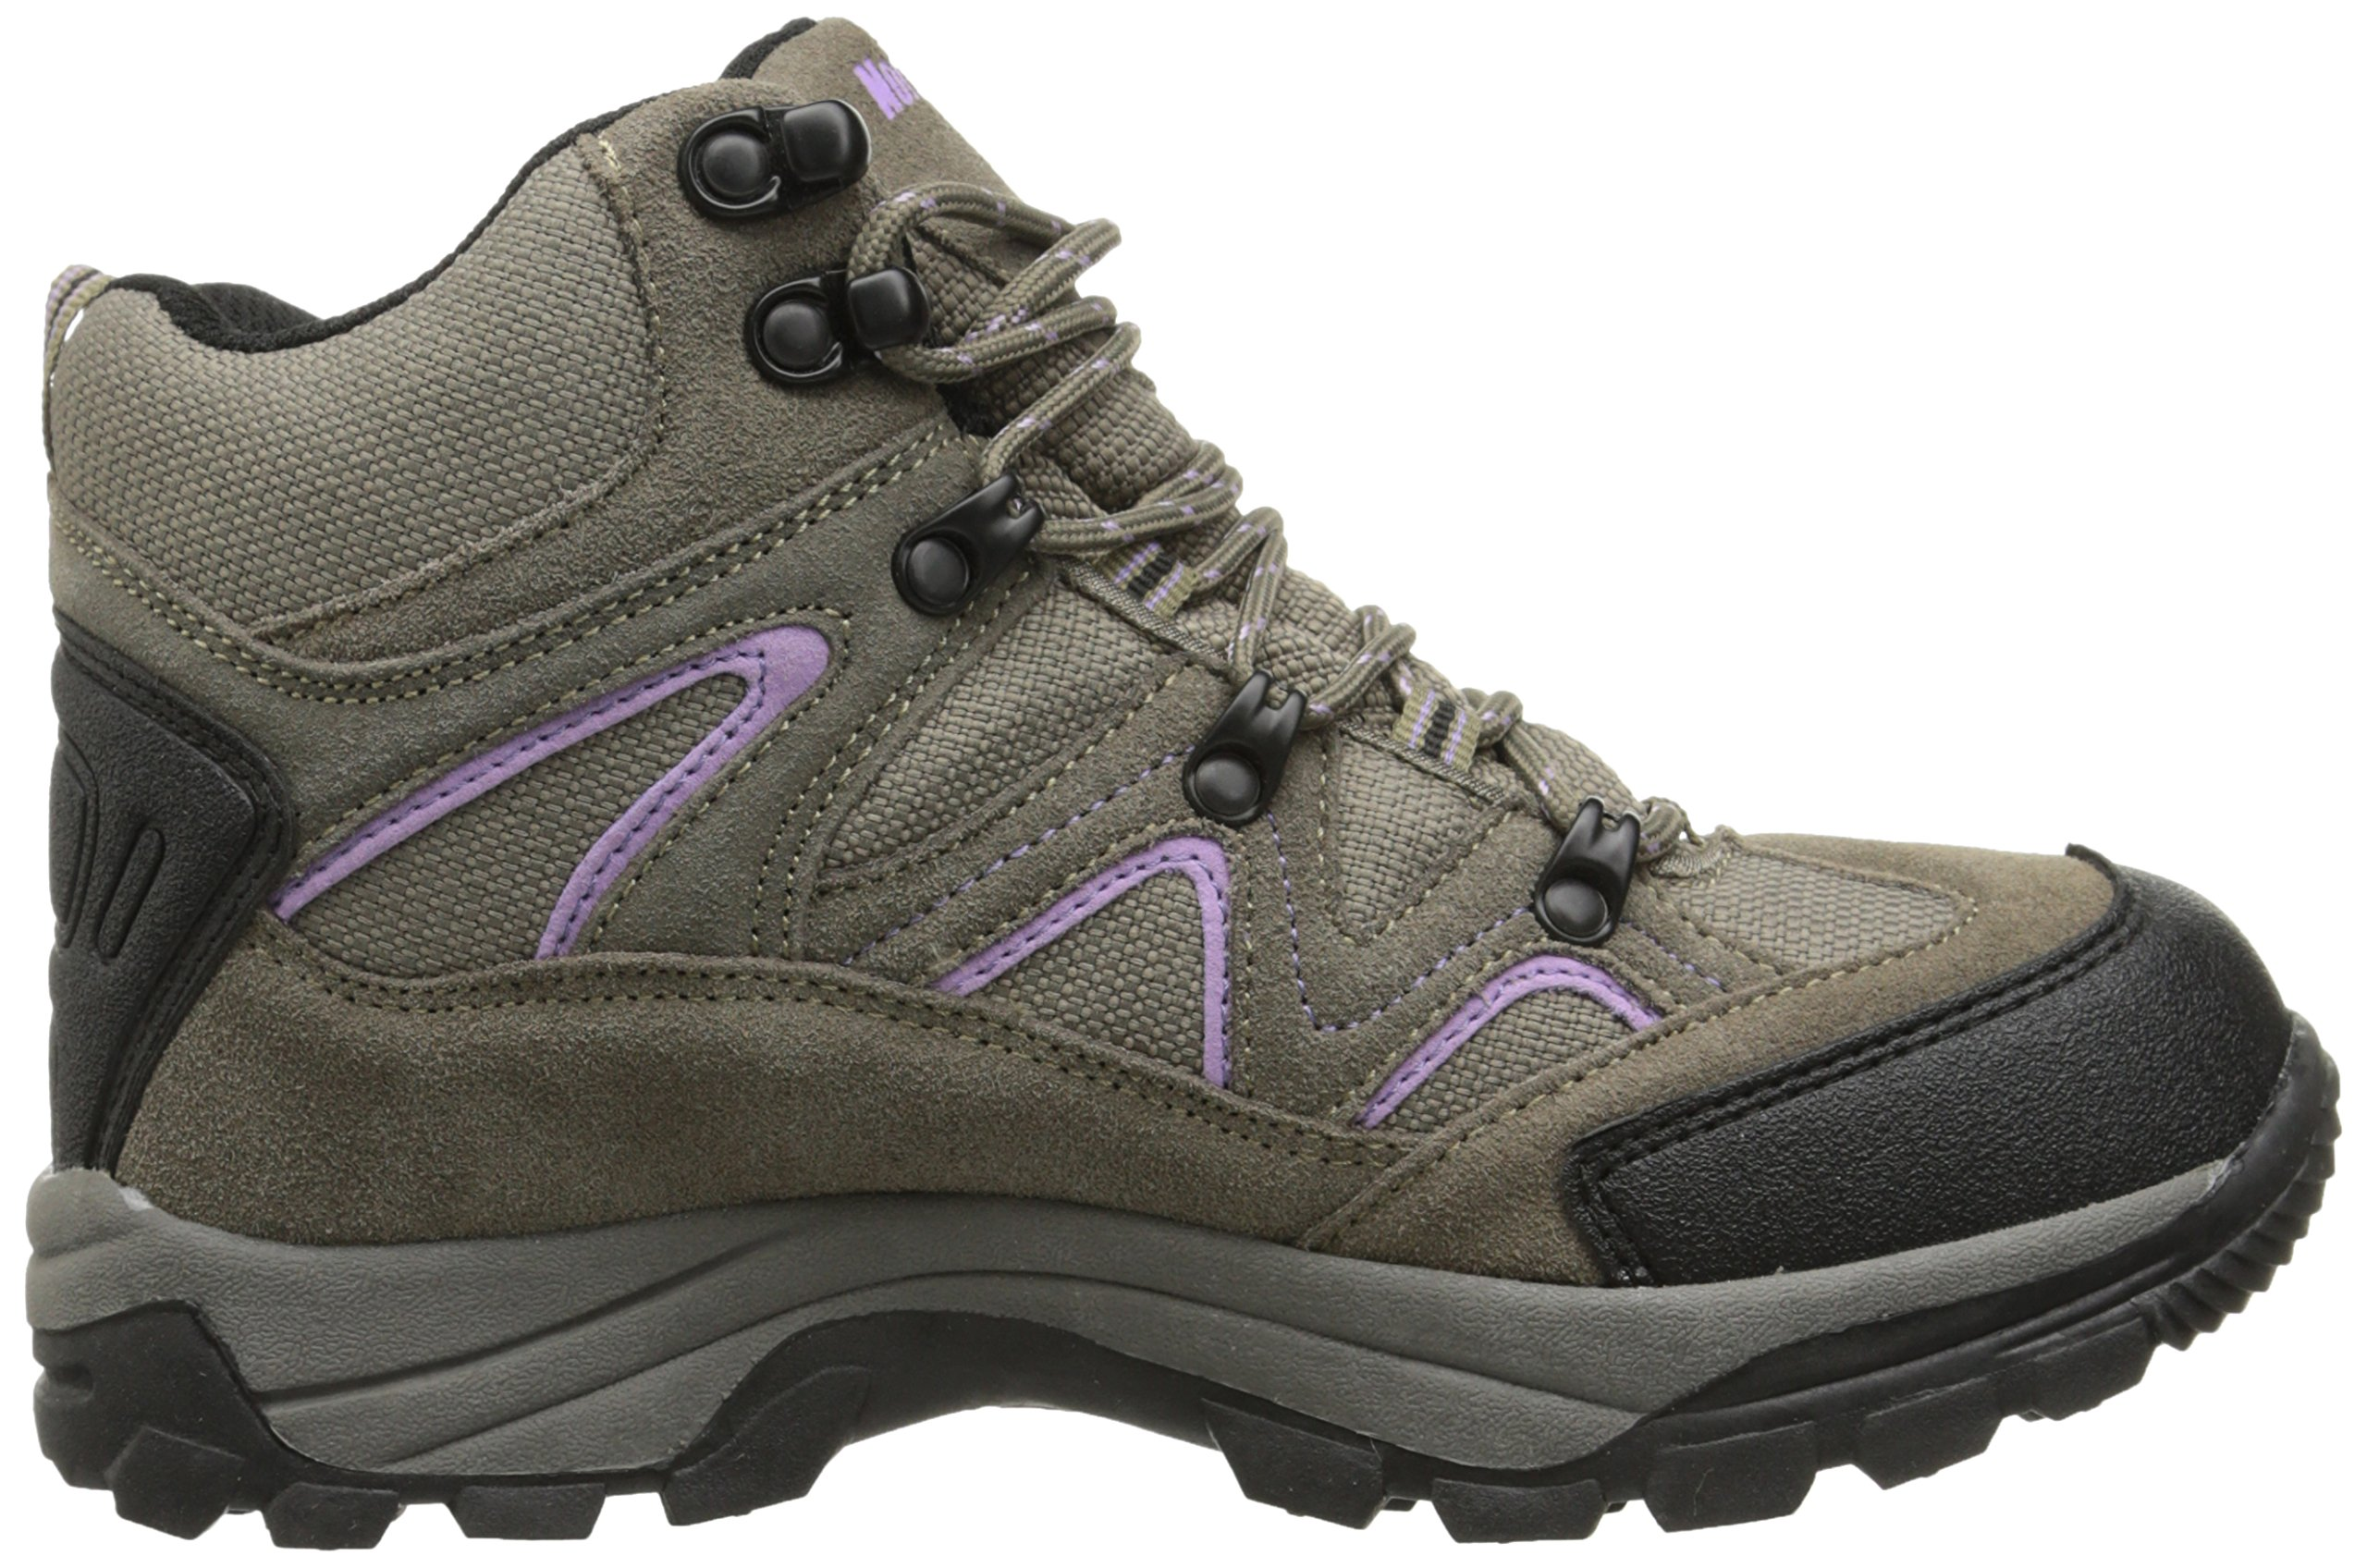 Northside Women's Snohomish Hiking Boot, Tan/Periwinkle, 7 M US by Northside (Image #7)